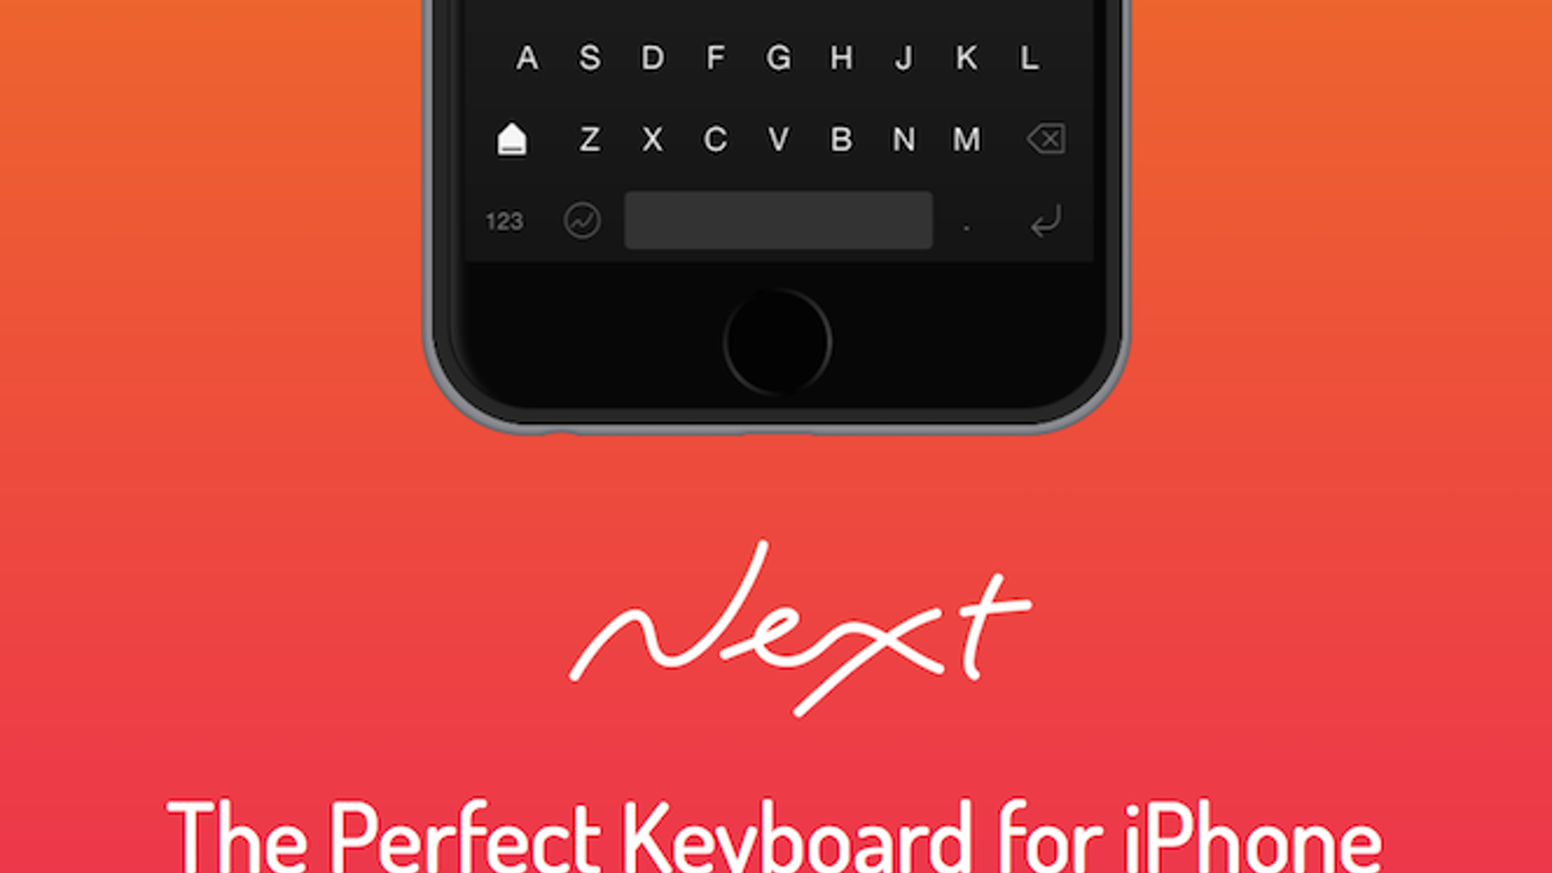 A keyboard that puts more power at your fingertips with super fast editing, predictive typing, instant emojis, and beautiful themes!